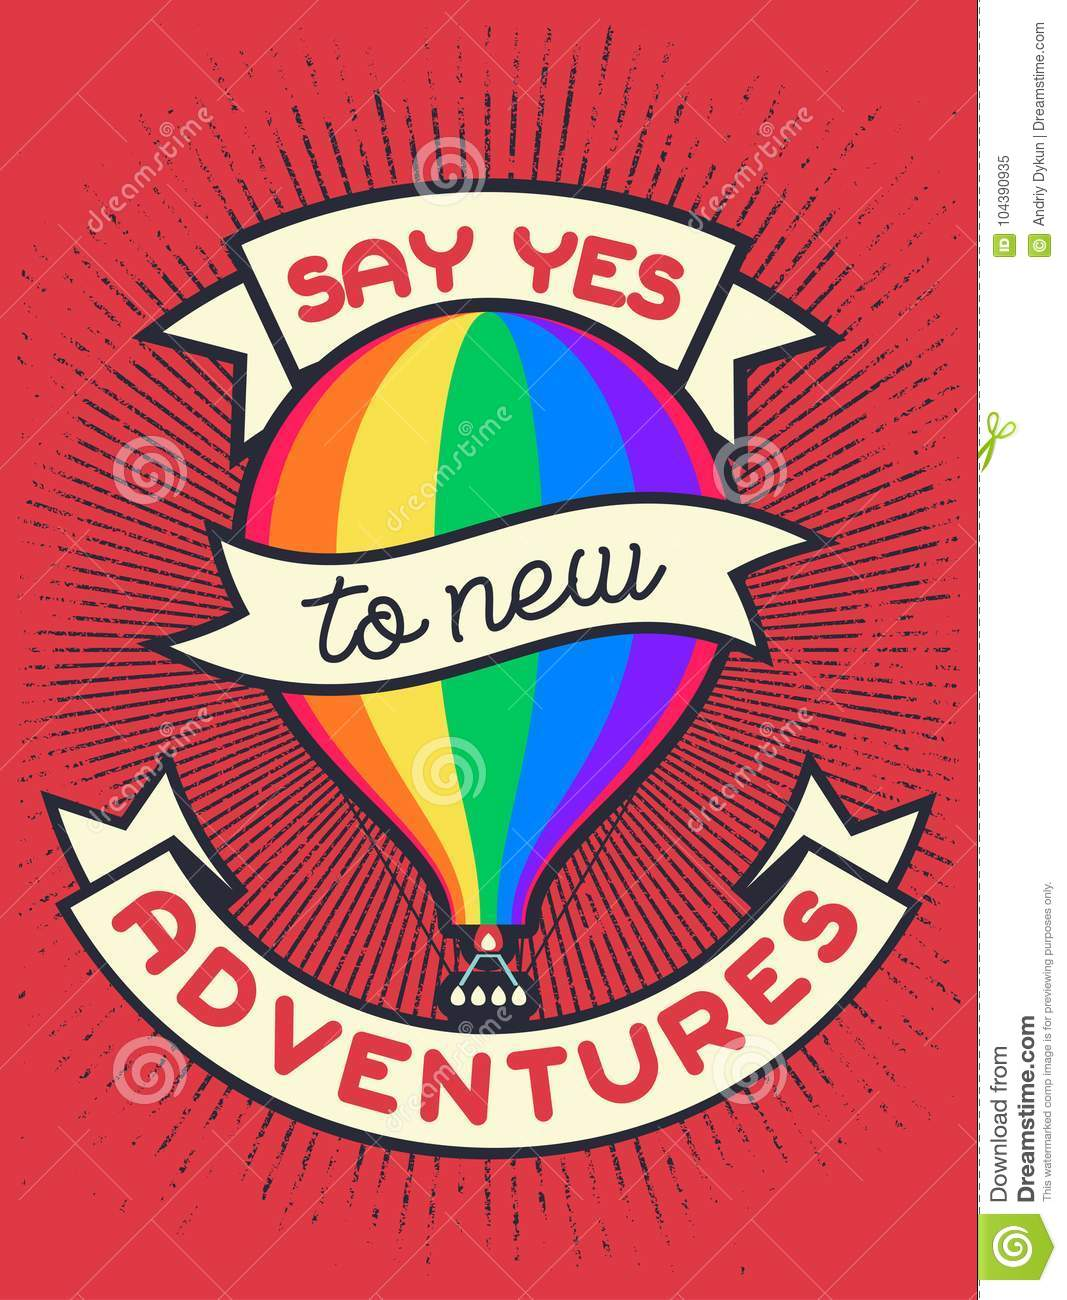 Vintage Lgbt Propaganda Lettering Quote Say Yes To New Adwentures